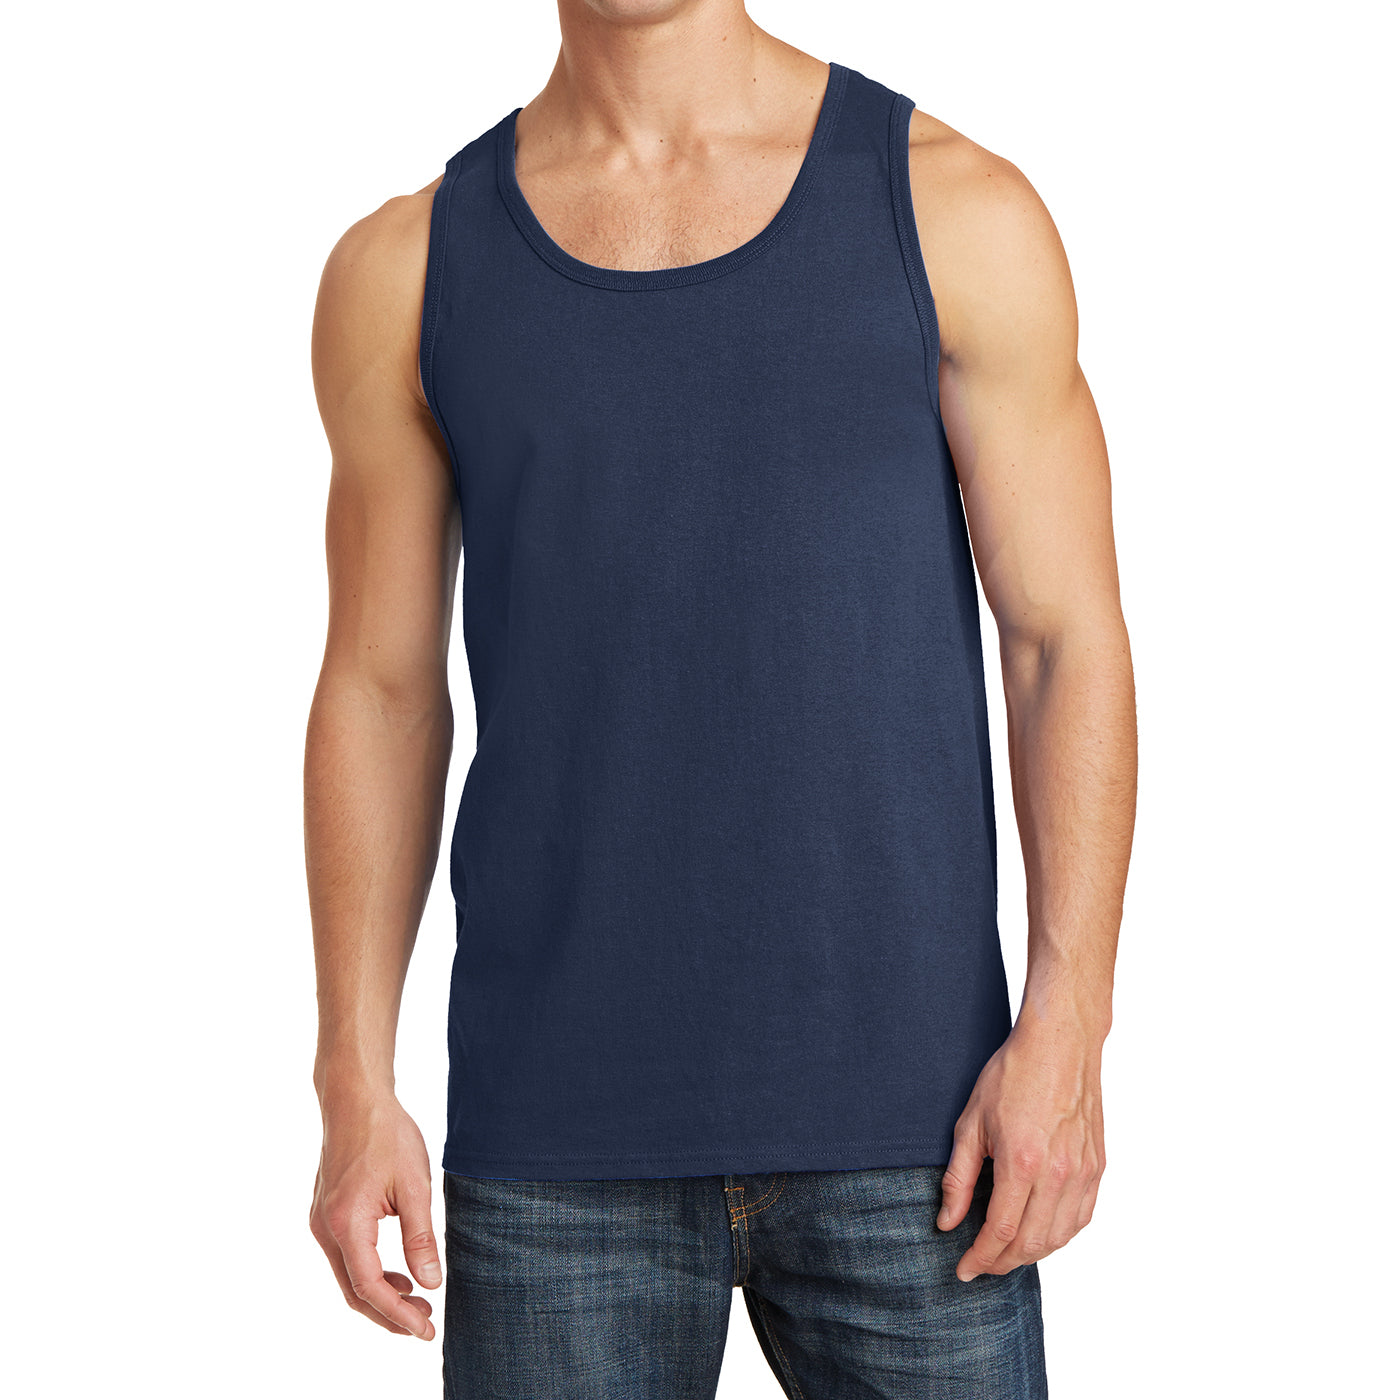 Men's Core Cotton Tank Top - Navy - Front